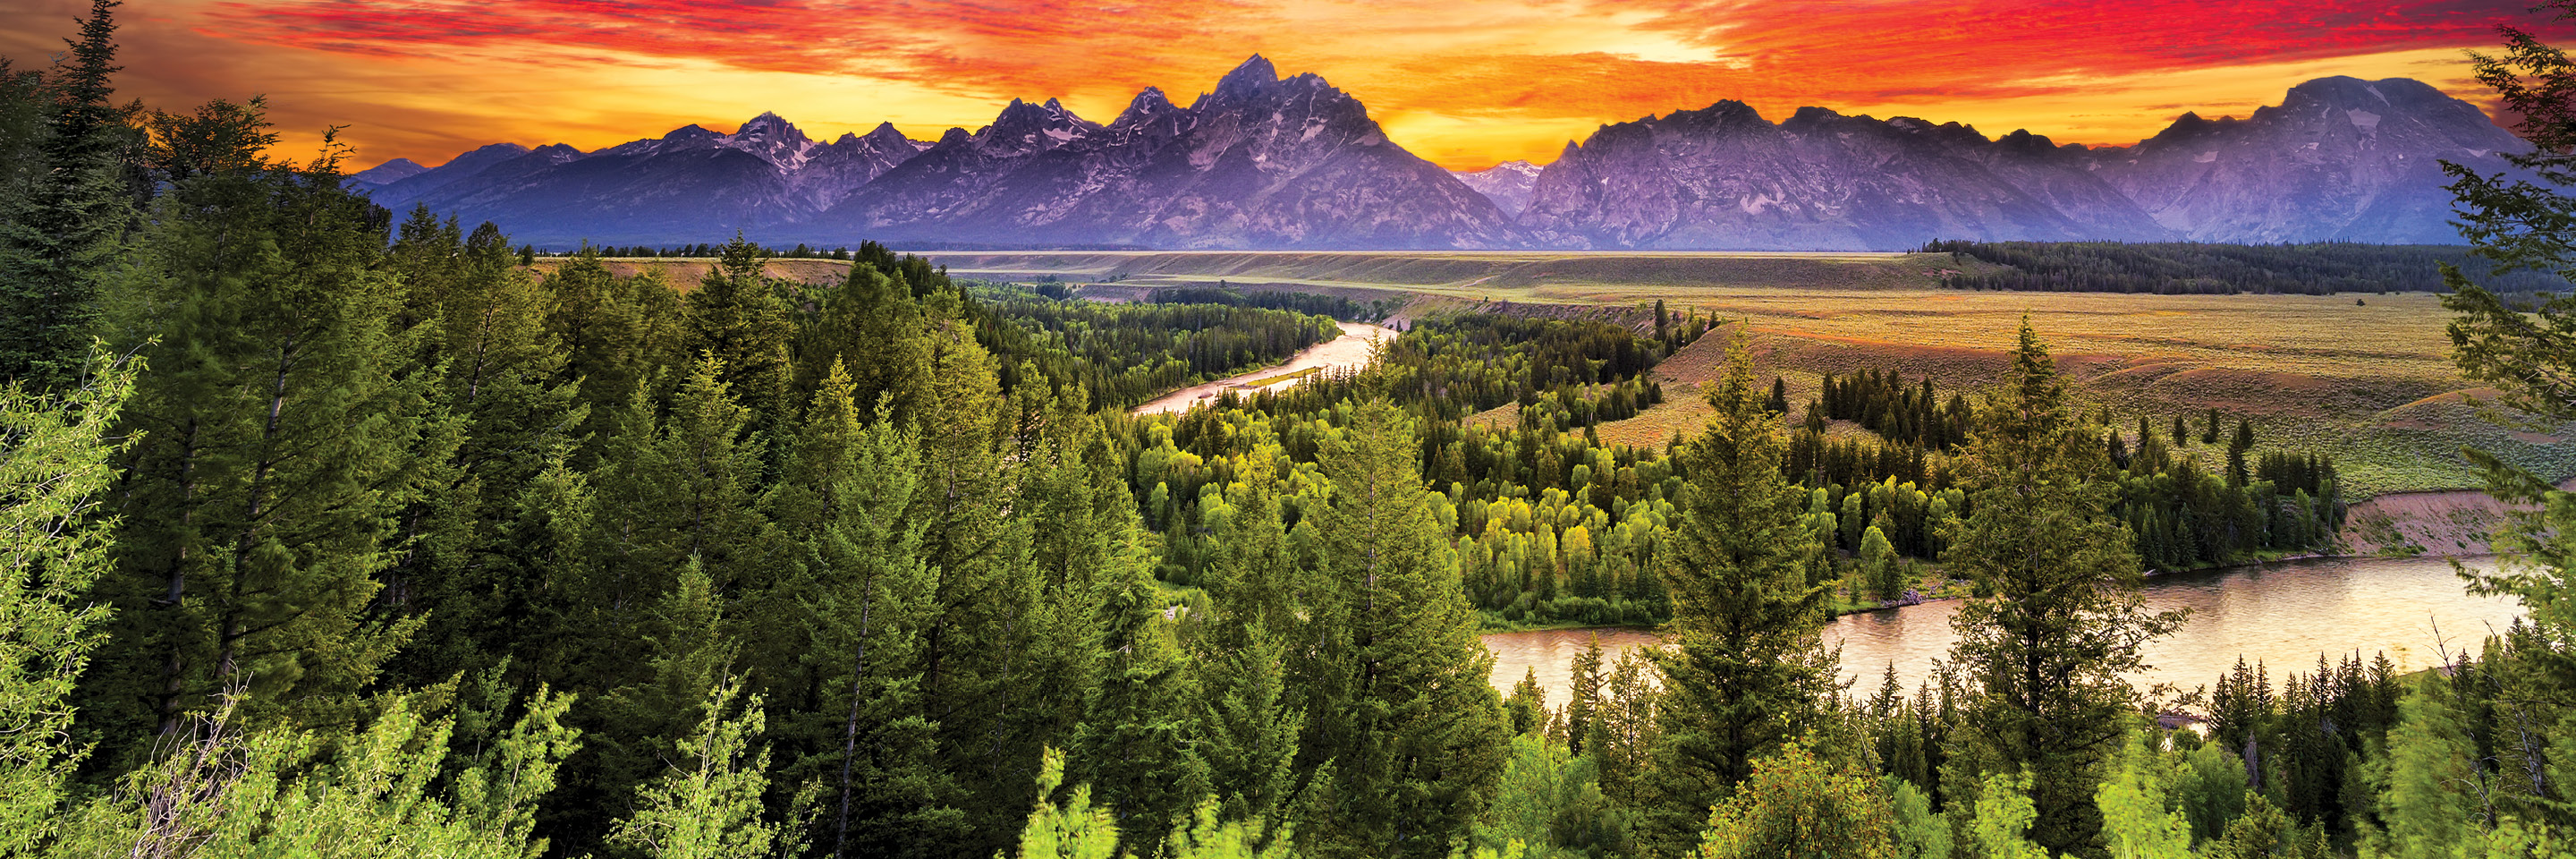 Exploring America's National Parks